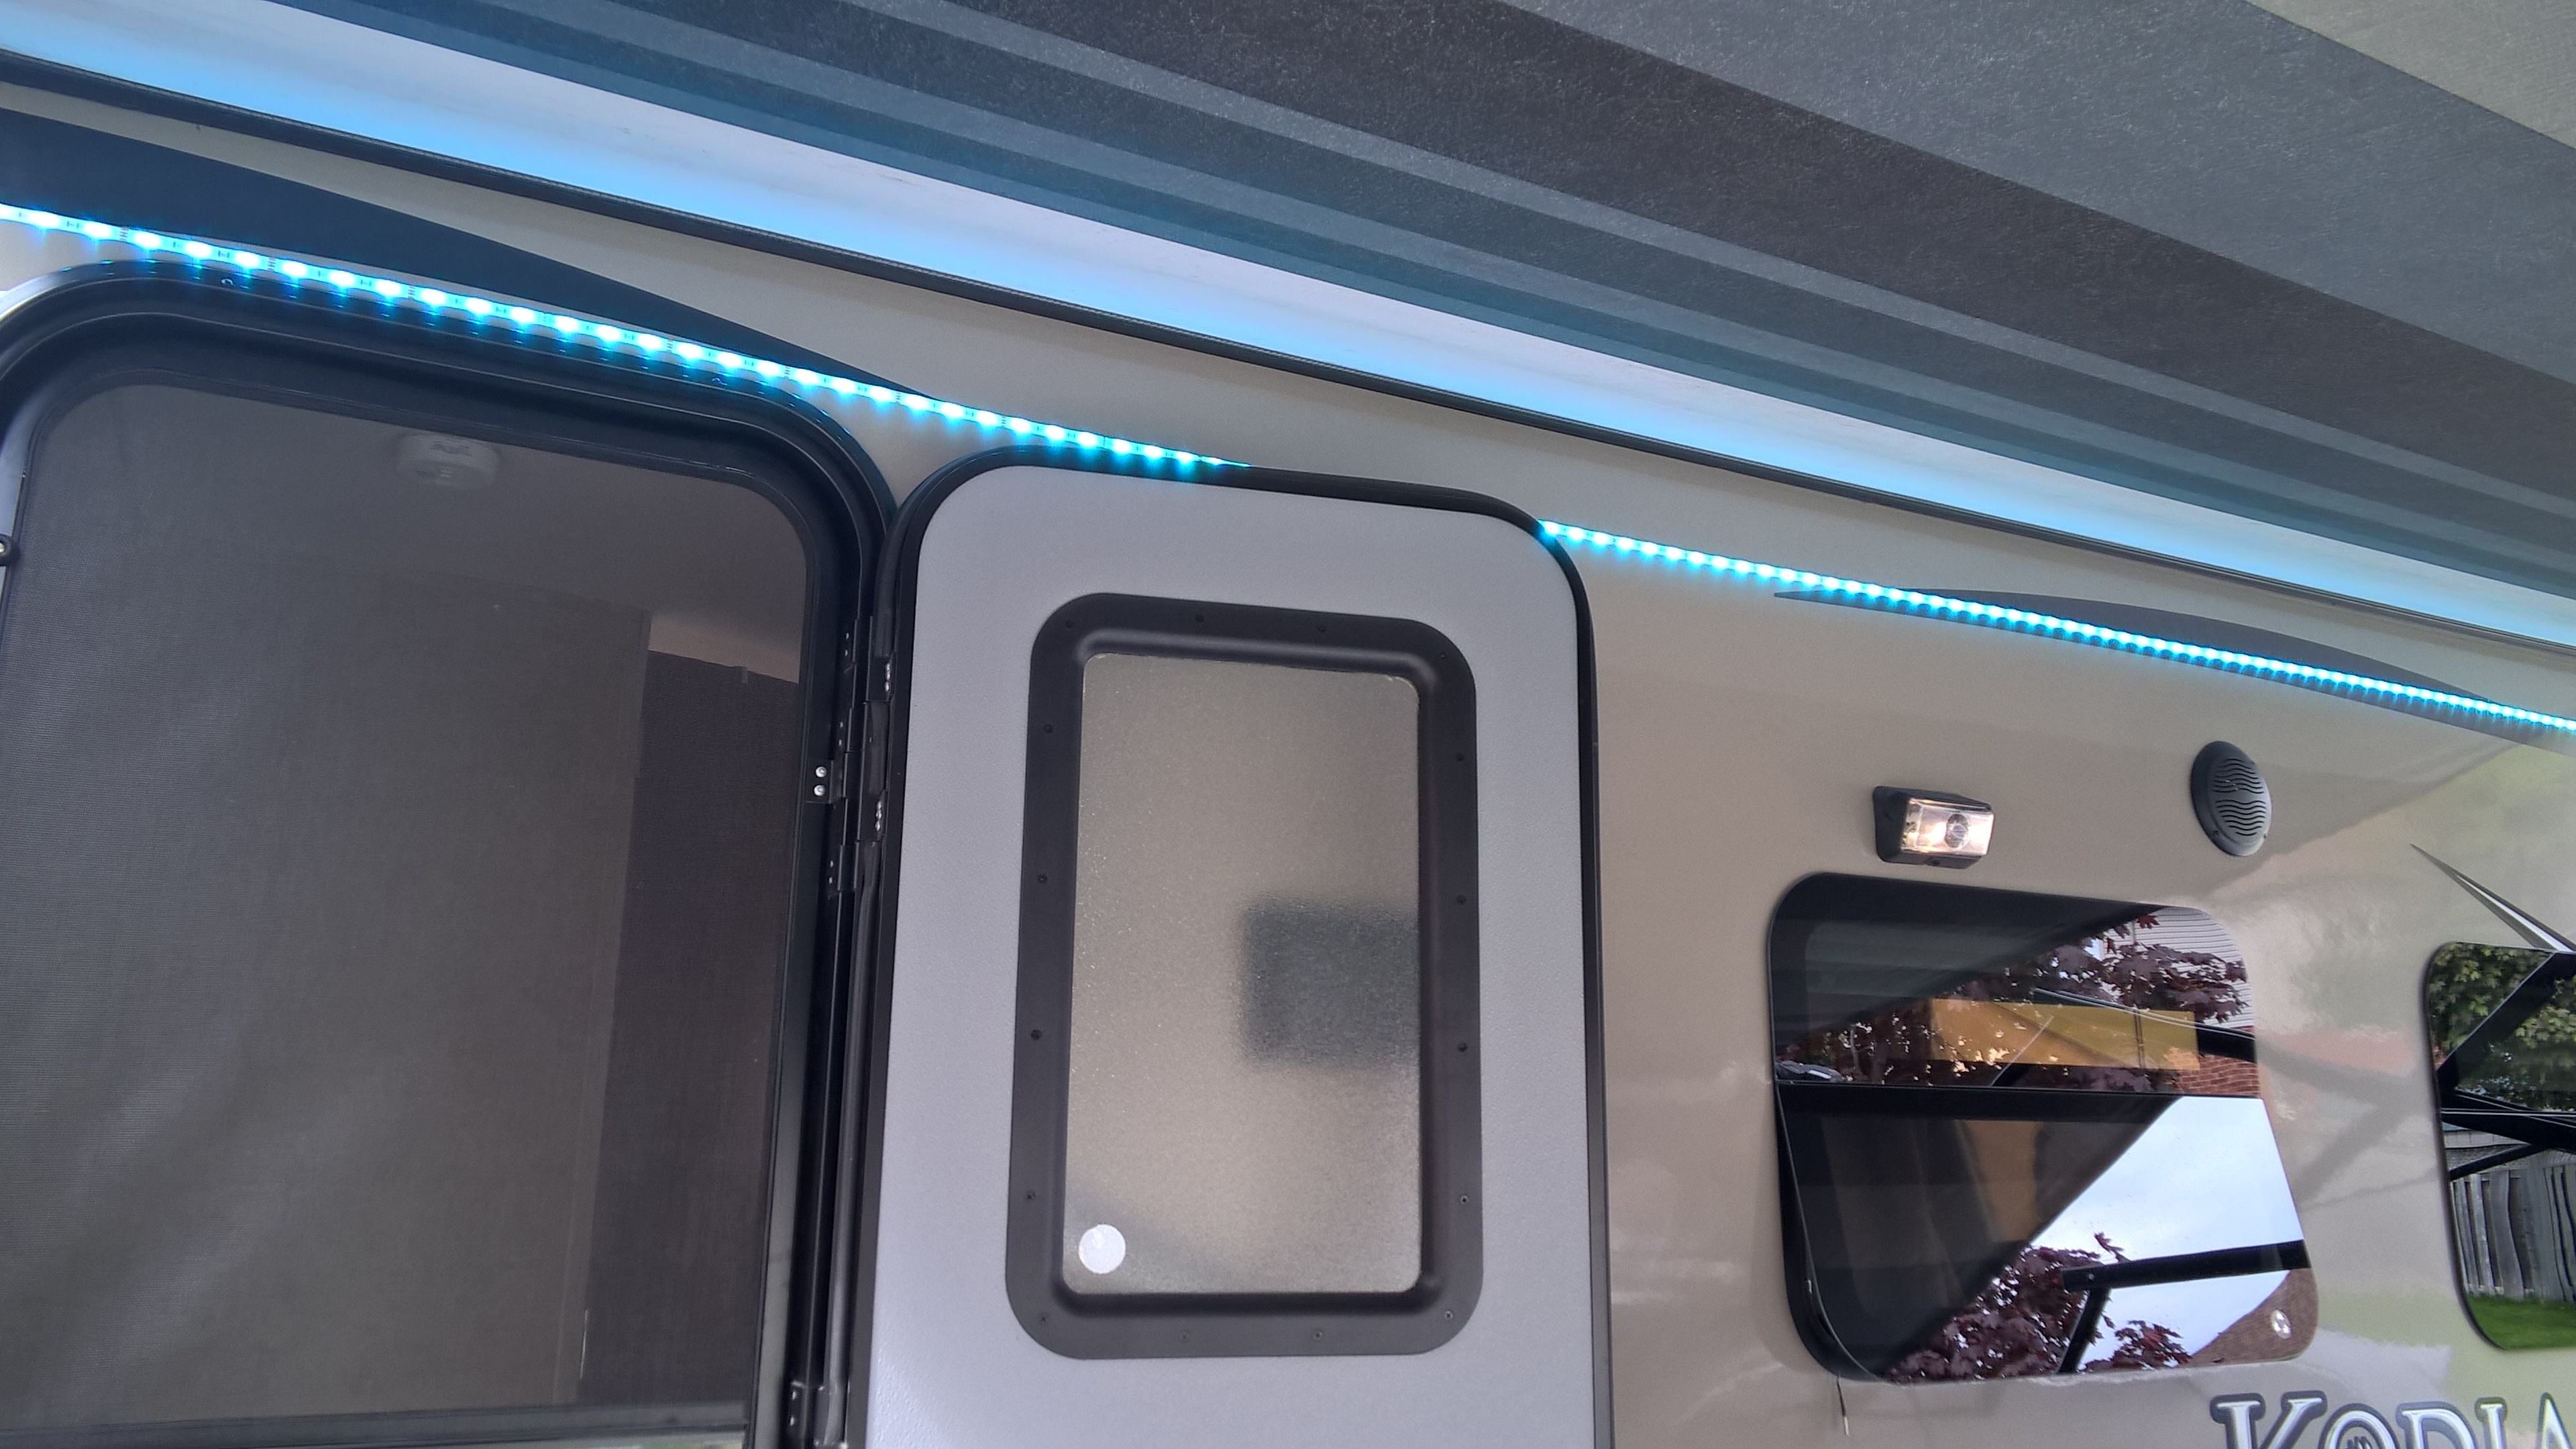 Installing an RV LED Strip light | RV Tech with RVRob